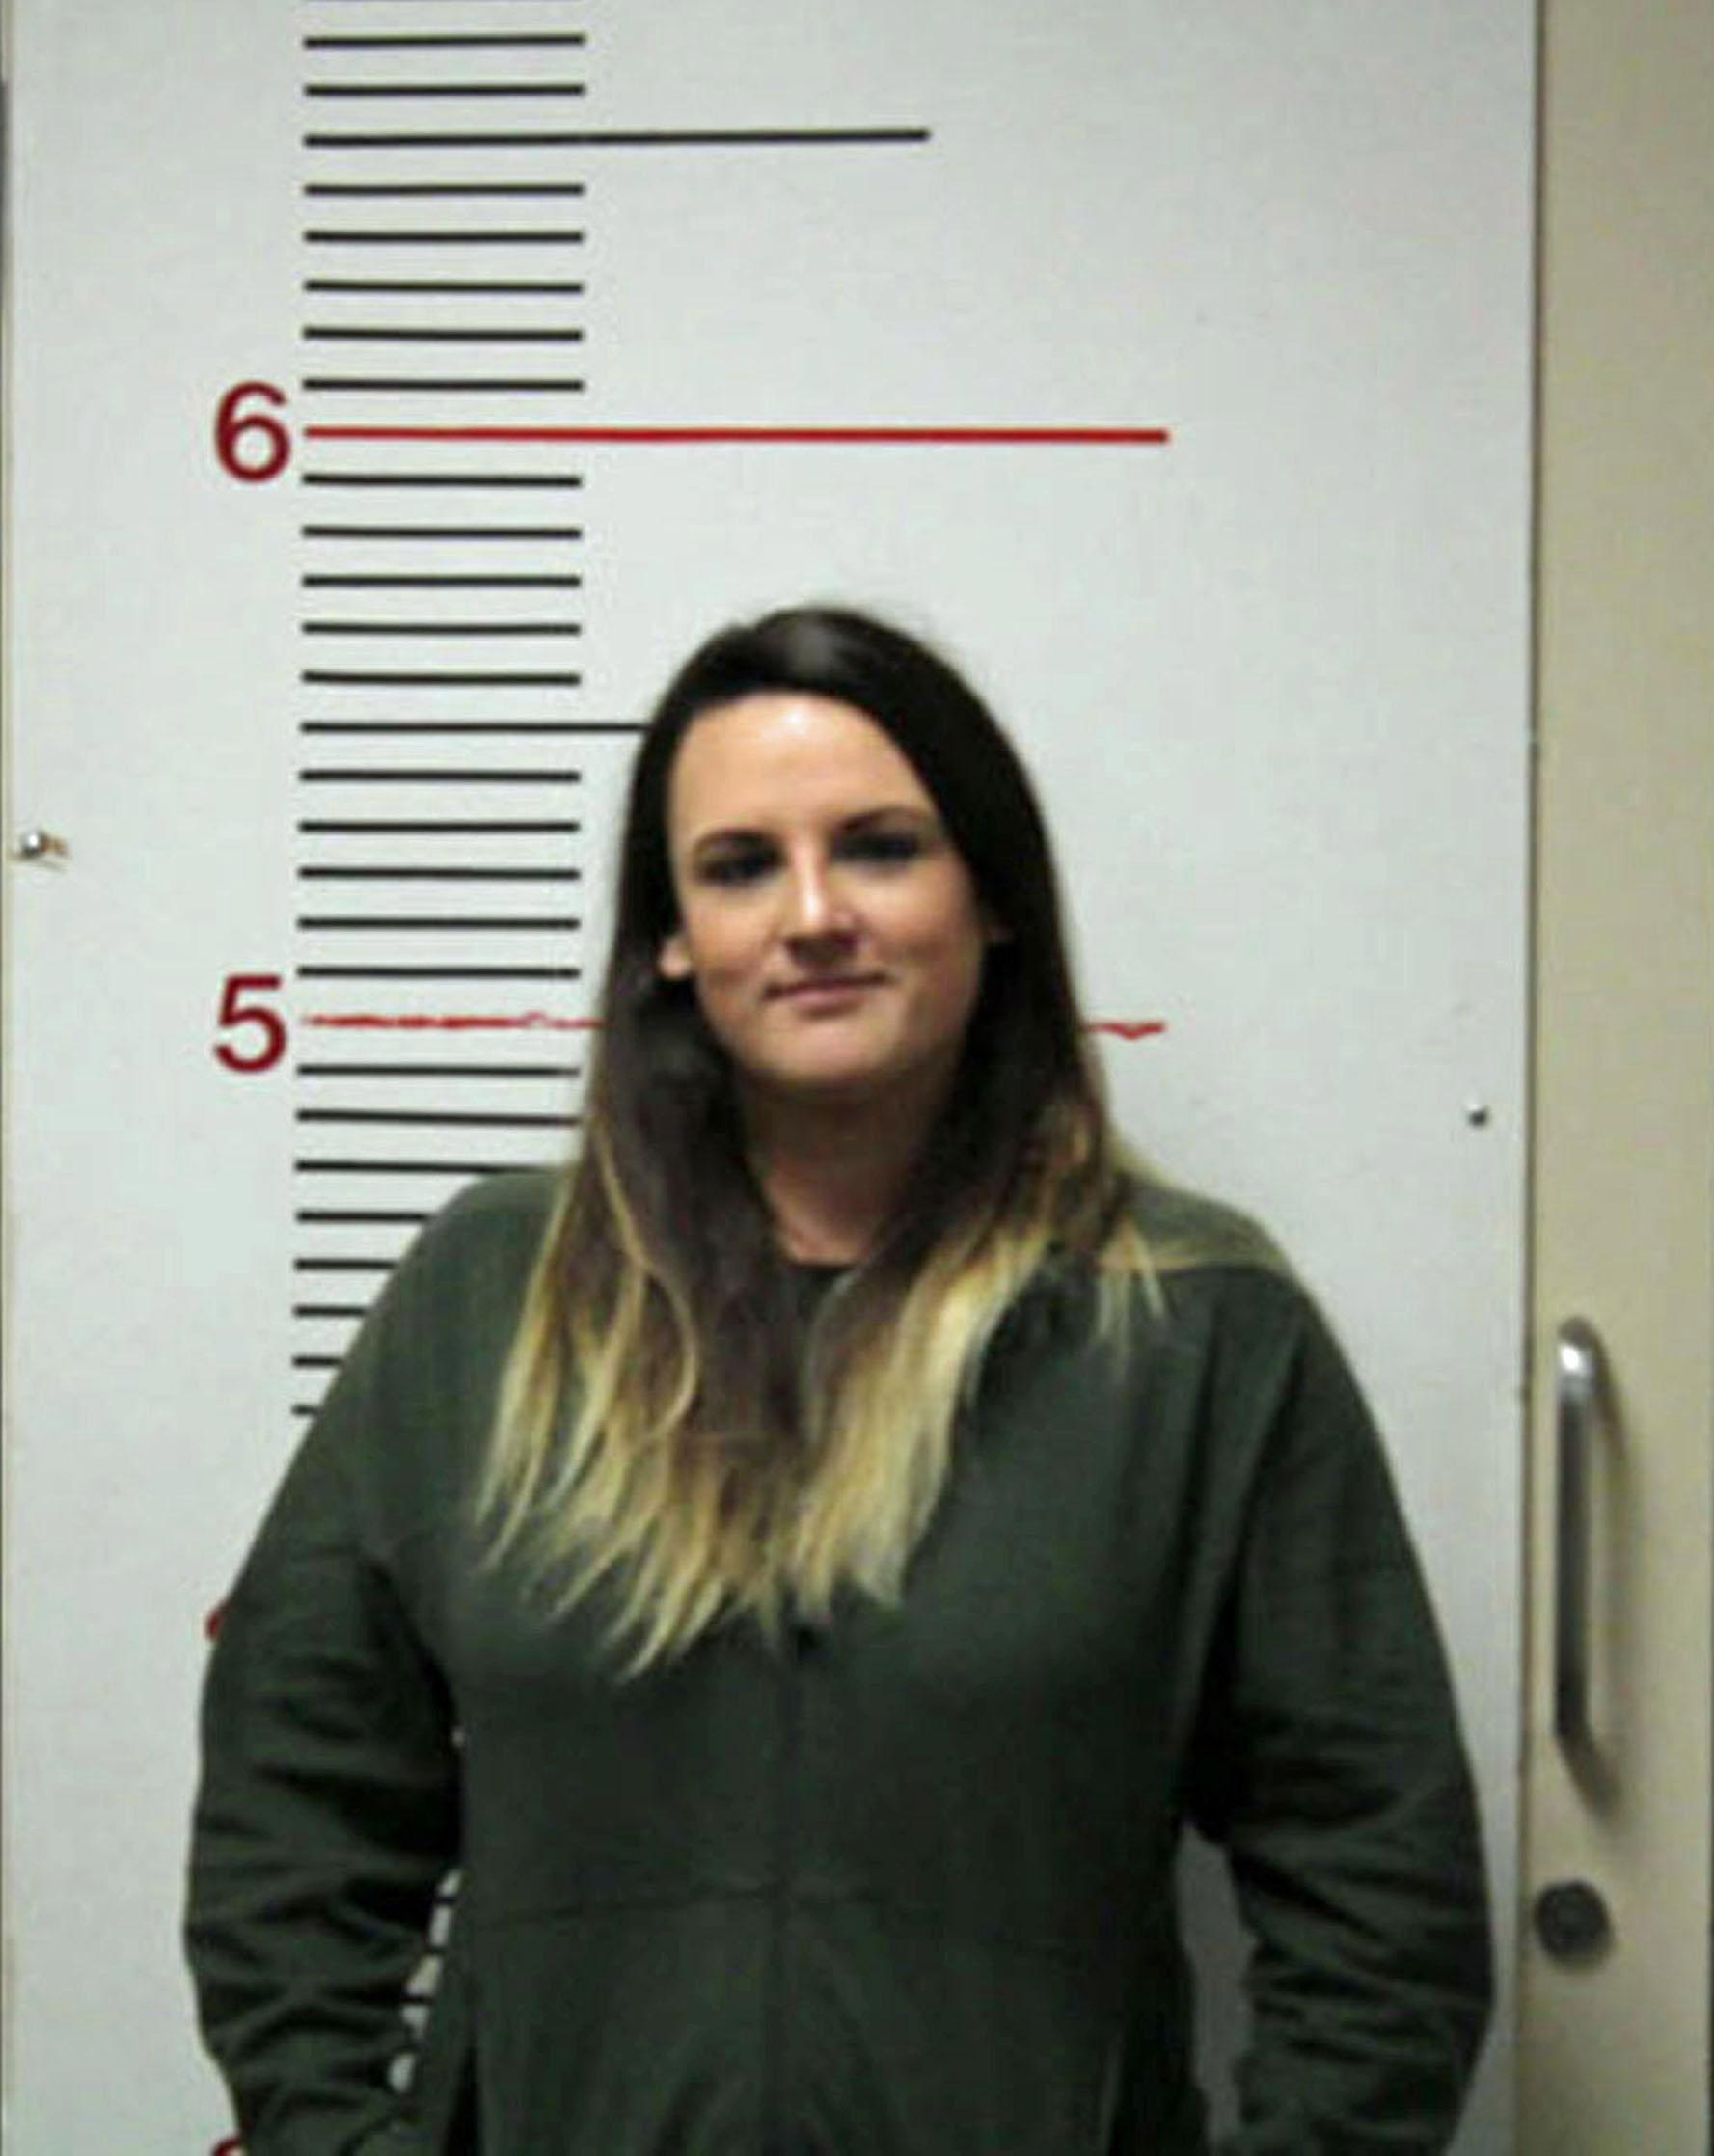 Female teacher faces 20 YEARS in prison for regularly picking up student for sex in her car